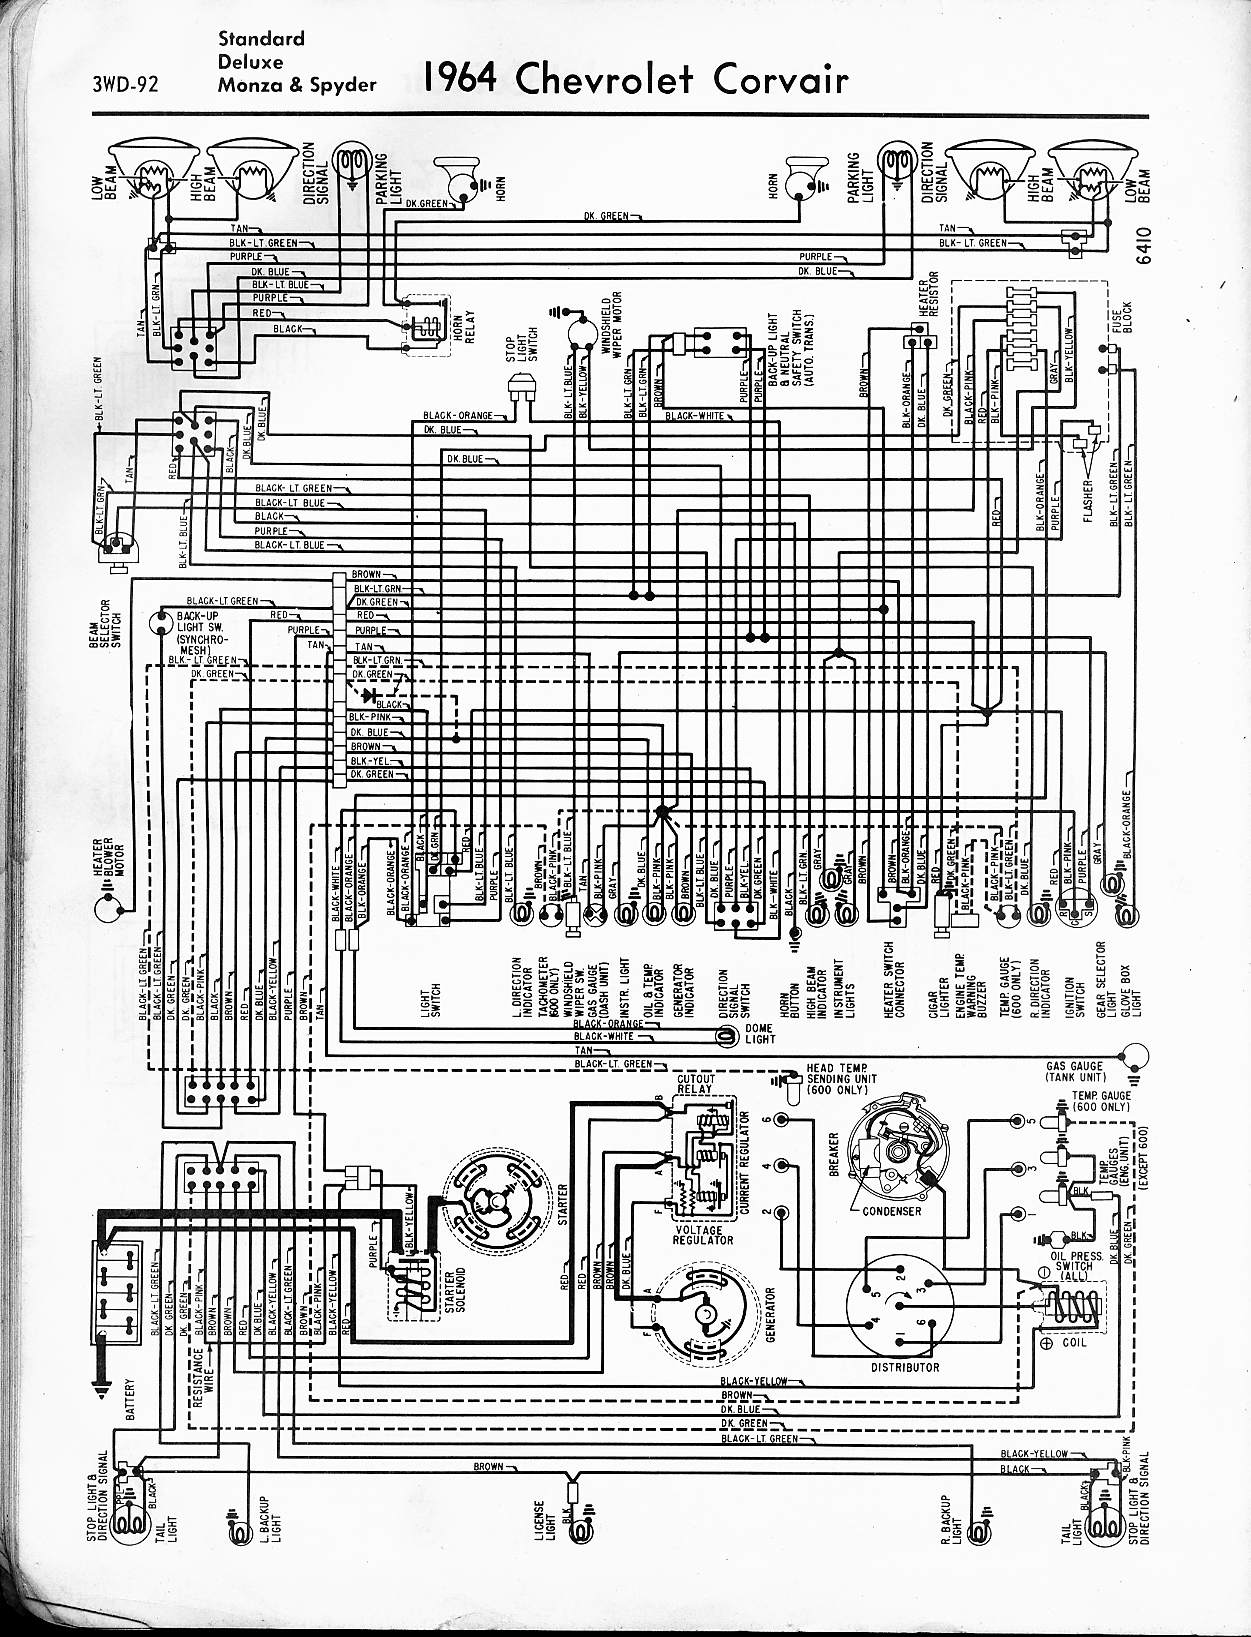 temp wiring diagram 65 chevelle trusted wiring diagrams u2022 rh sivamuni com